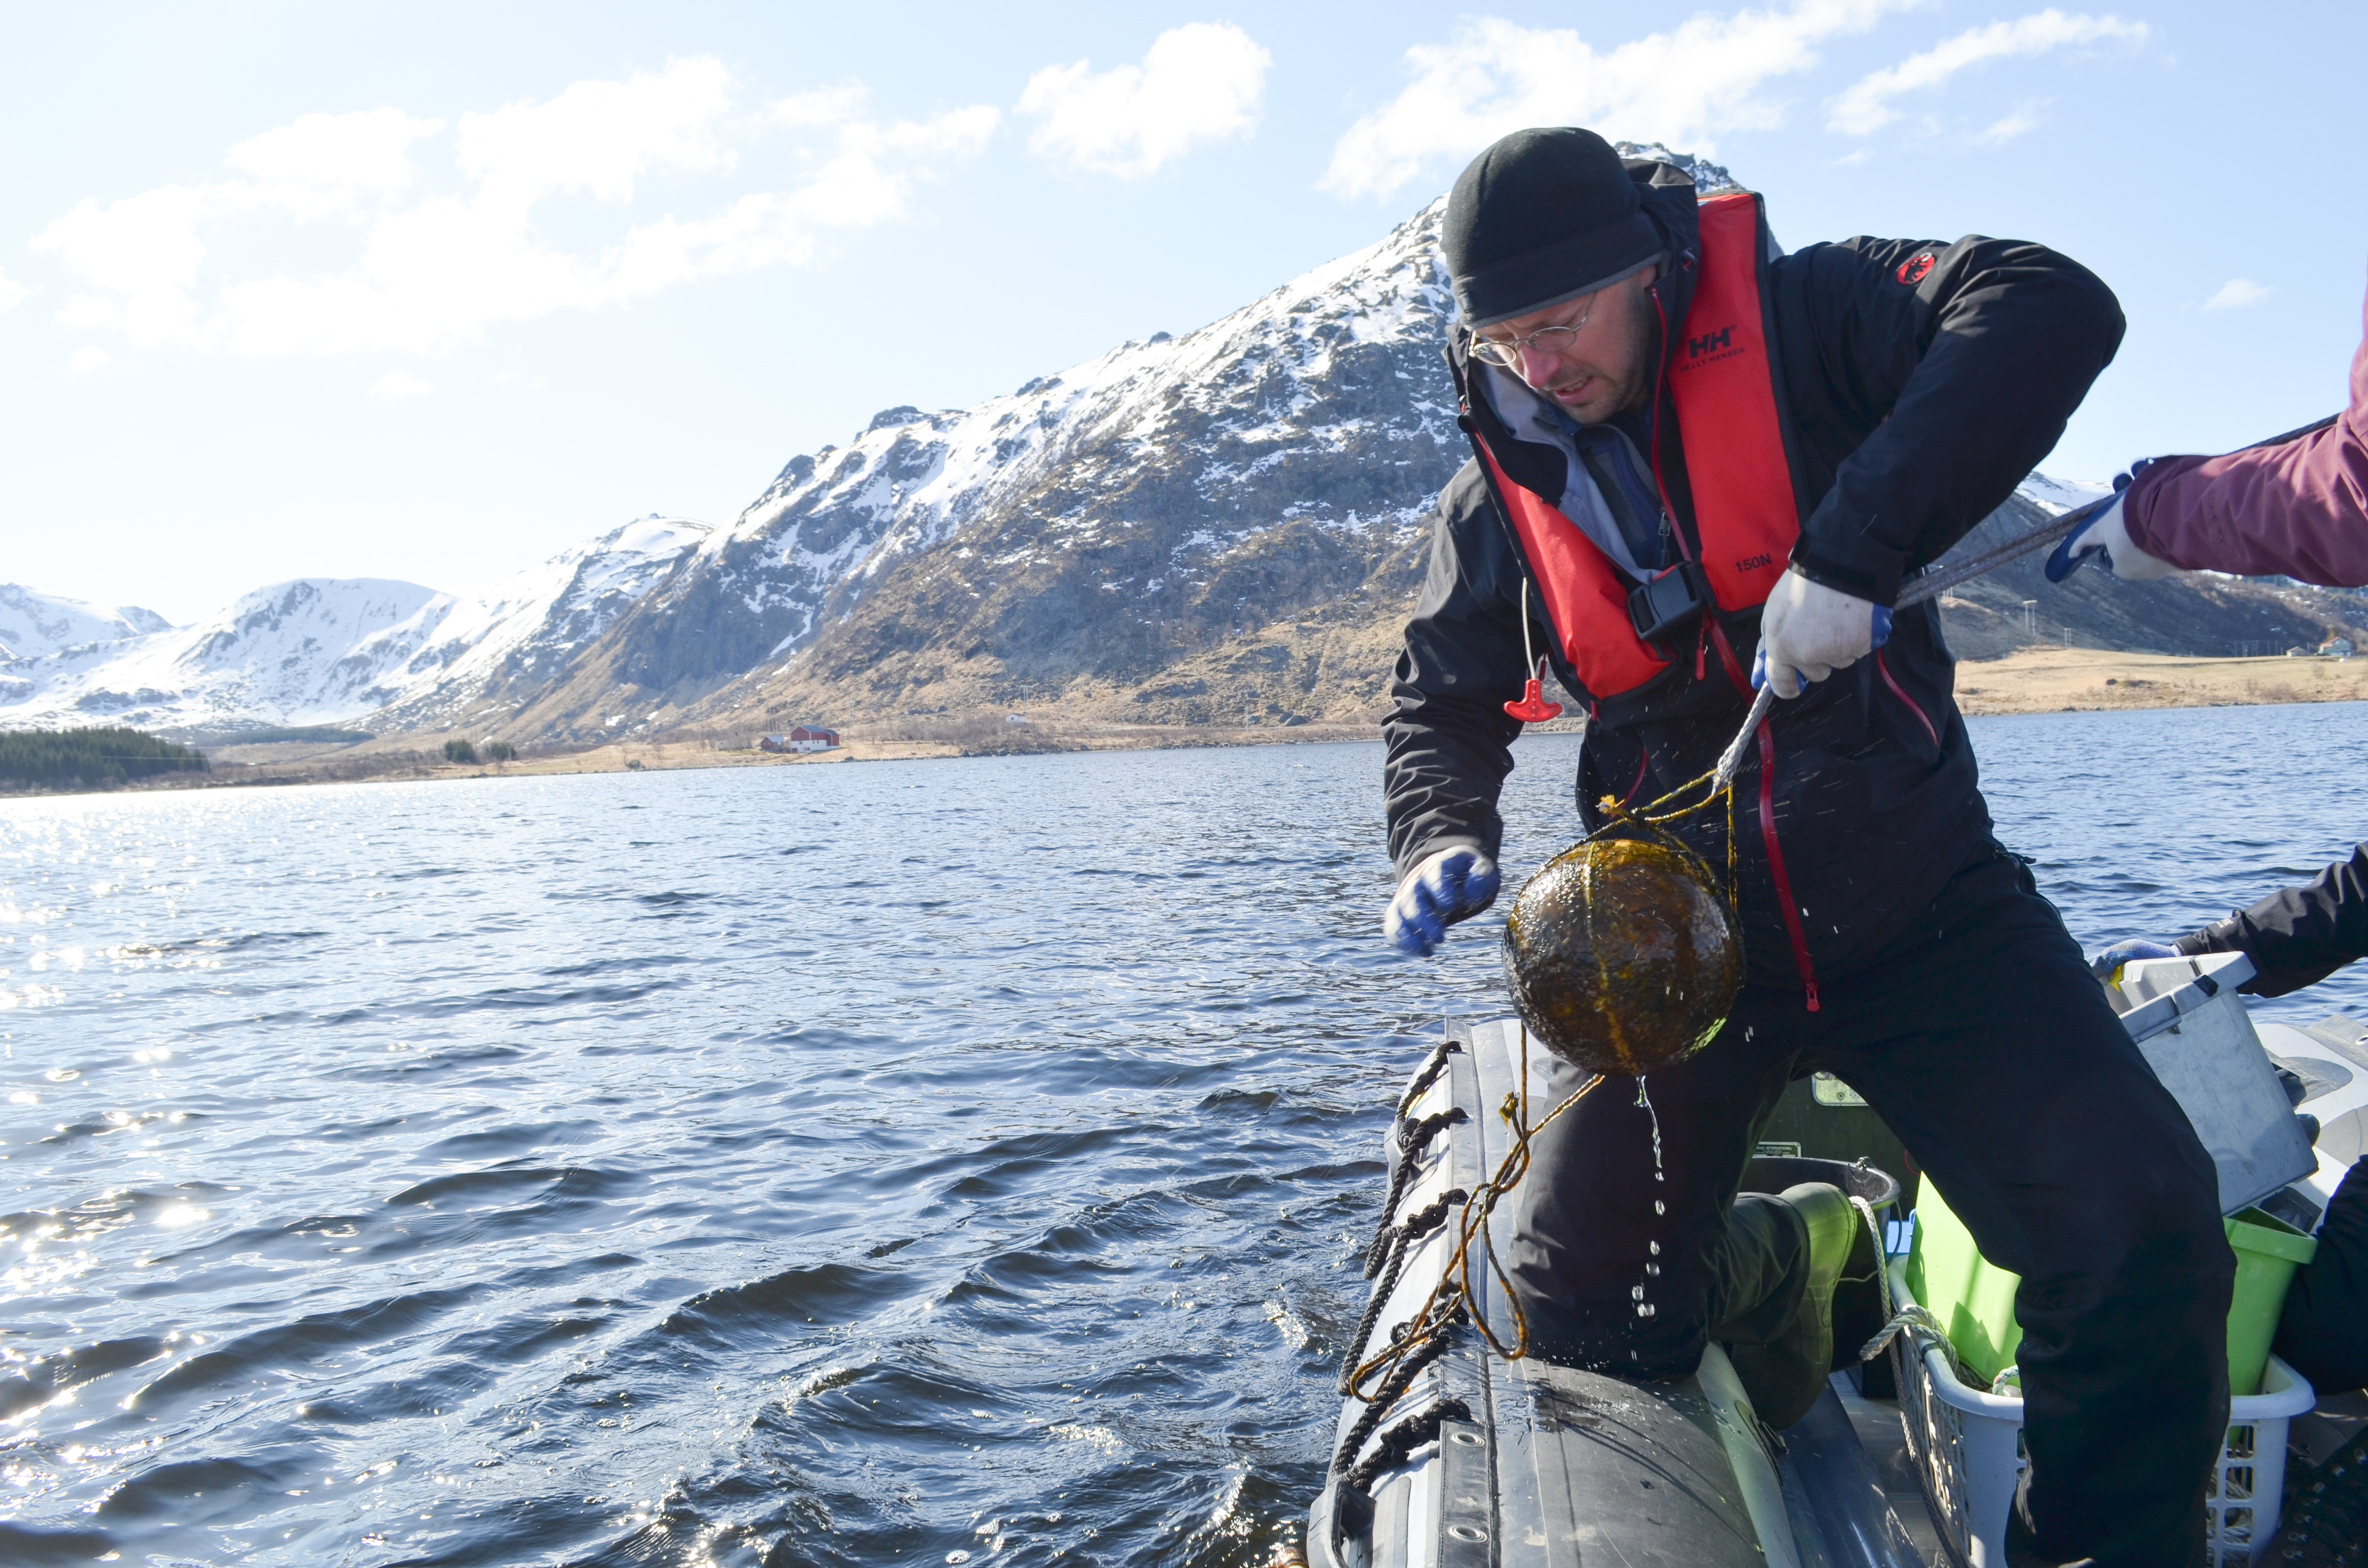 Scientists are plumbing the bottoms of lakes and bays in Norway's arctic Lofoten Islands to investigate the influence of climate and sea level on the Vikings. Climatologist William D'Andrea of Lamont-Doherty Earth Observatory hauls up a float that has been moored below the surface for several years. (All photos: Kevin Krajick)